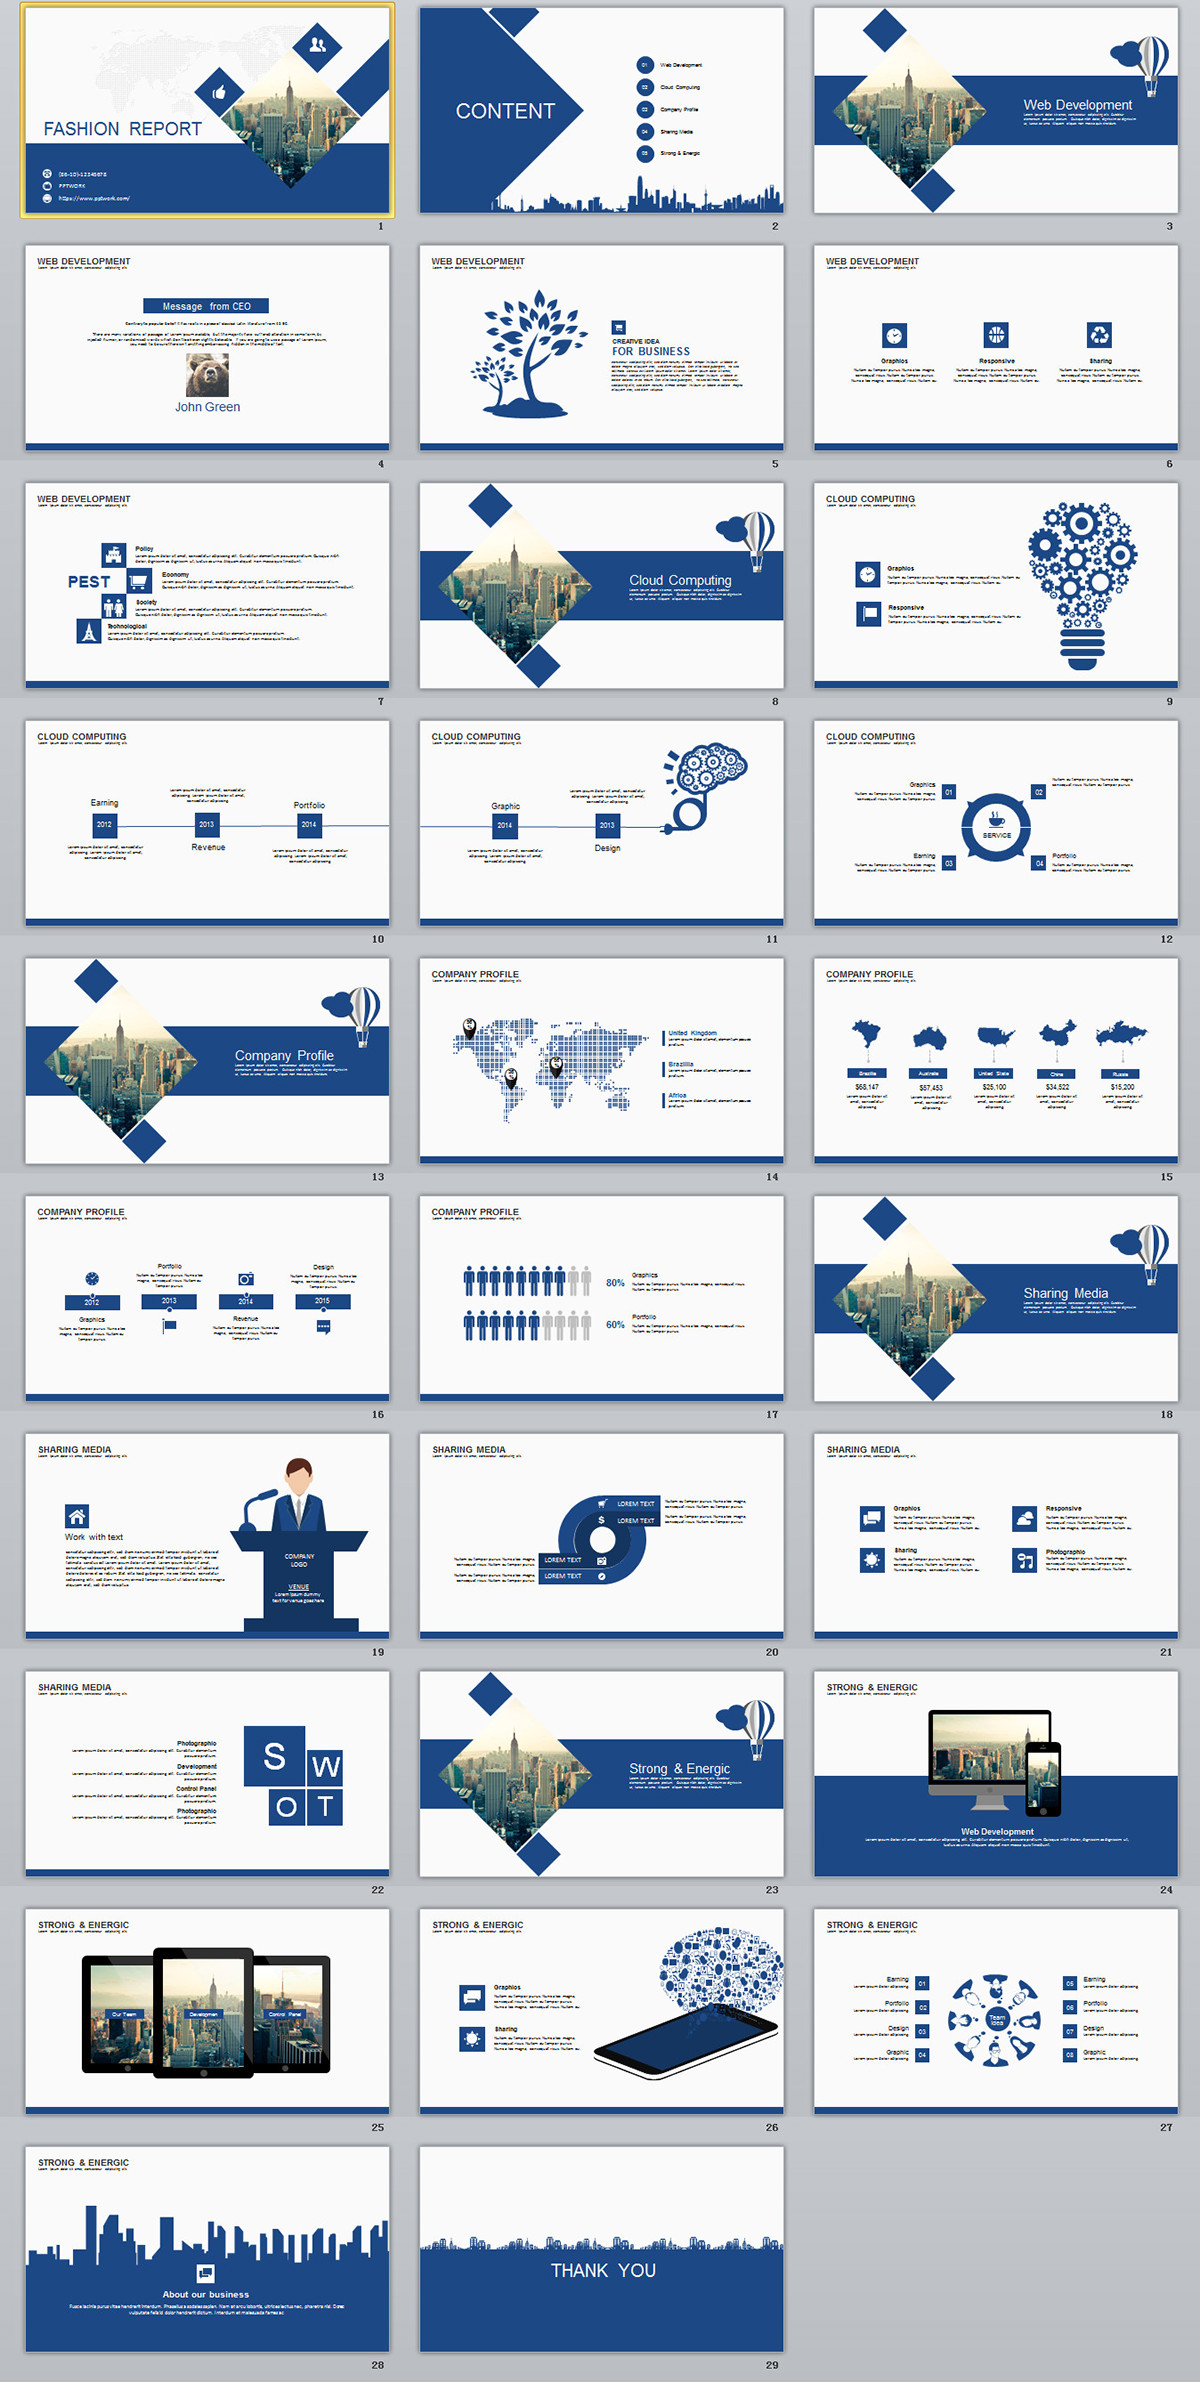 29 Blue Fashion Report Powerpoint Templates On Behance